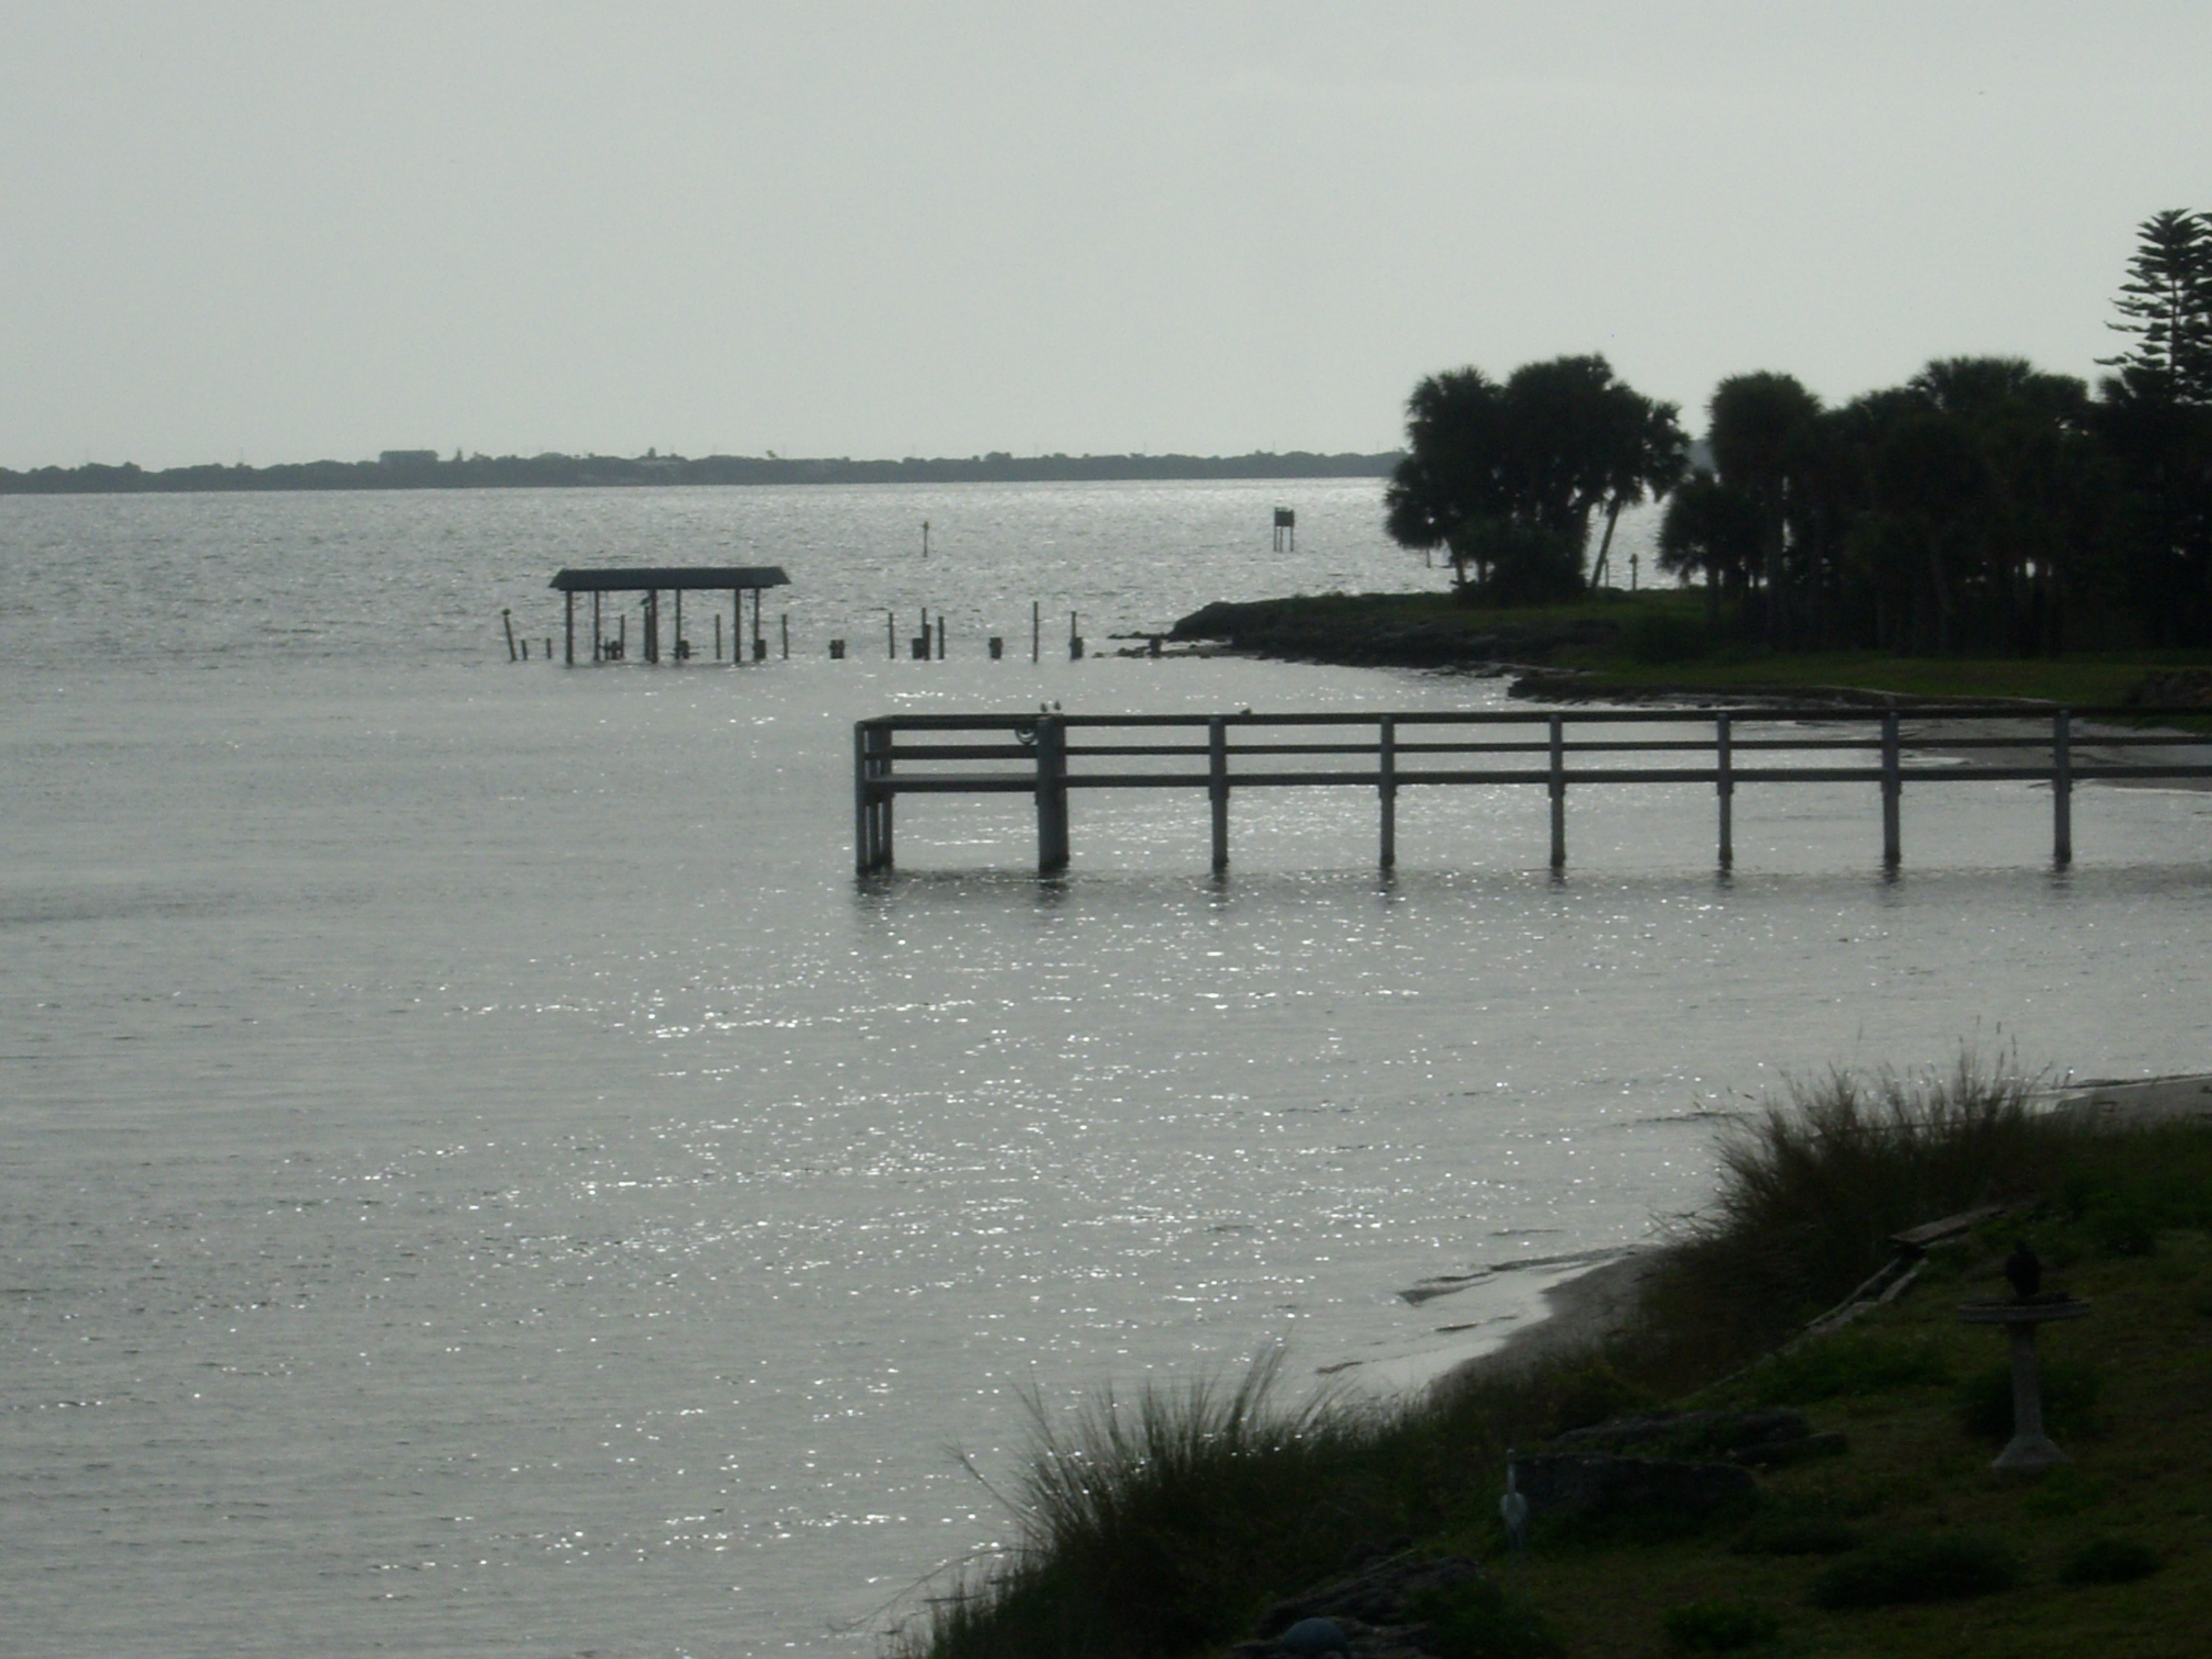 Florida-Salt-Water-Fishing-Index-Experienced-Tips-and-Rules-For-Salt-Water-Fishing-Success-wallpaper-wp4407074